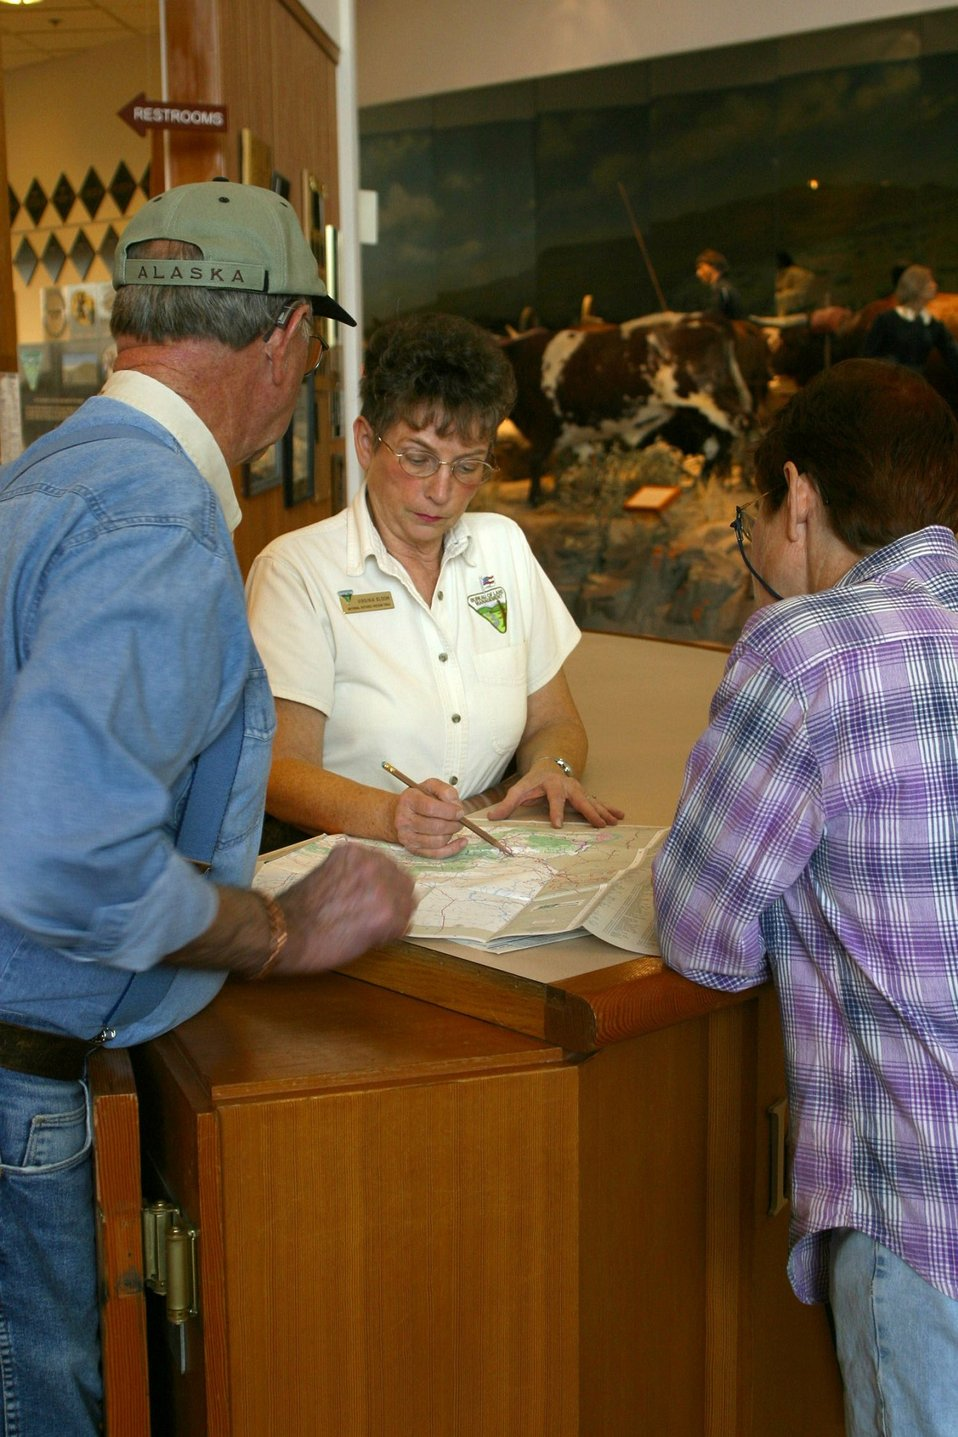 BLM employee Virginia Bloom giving visitors information about the Interpretive Center and the surrounding area.